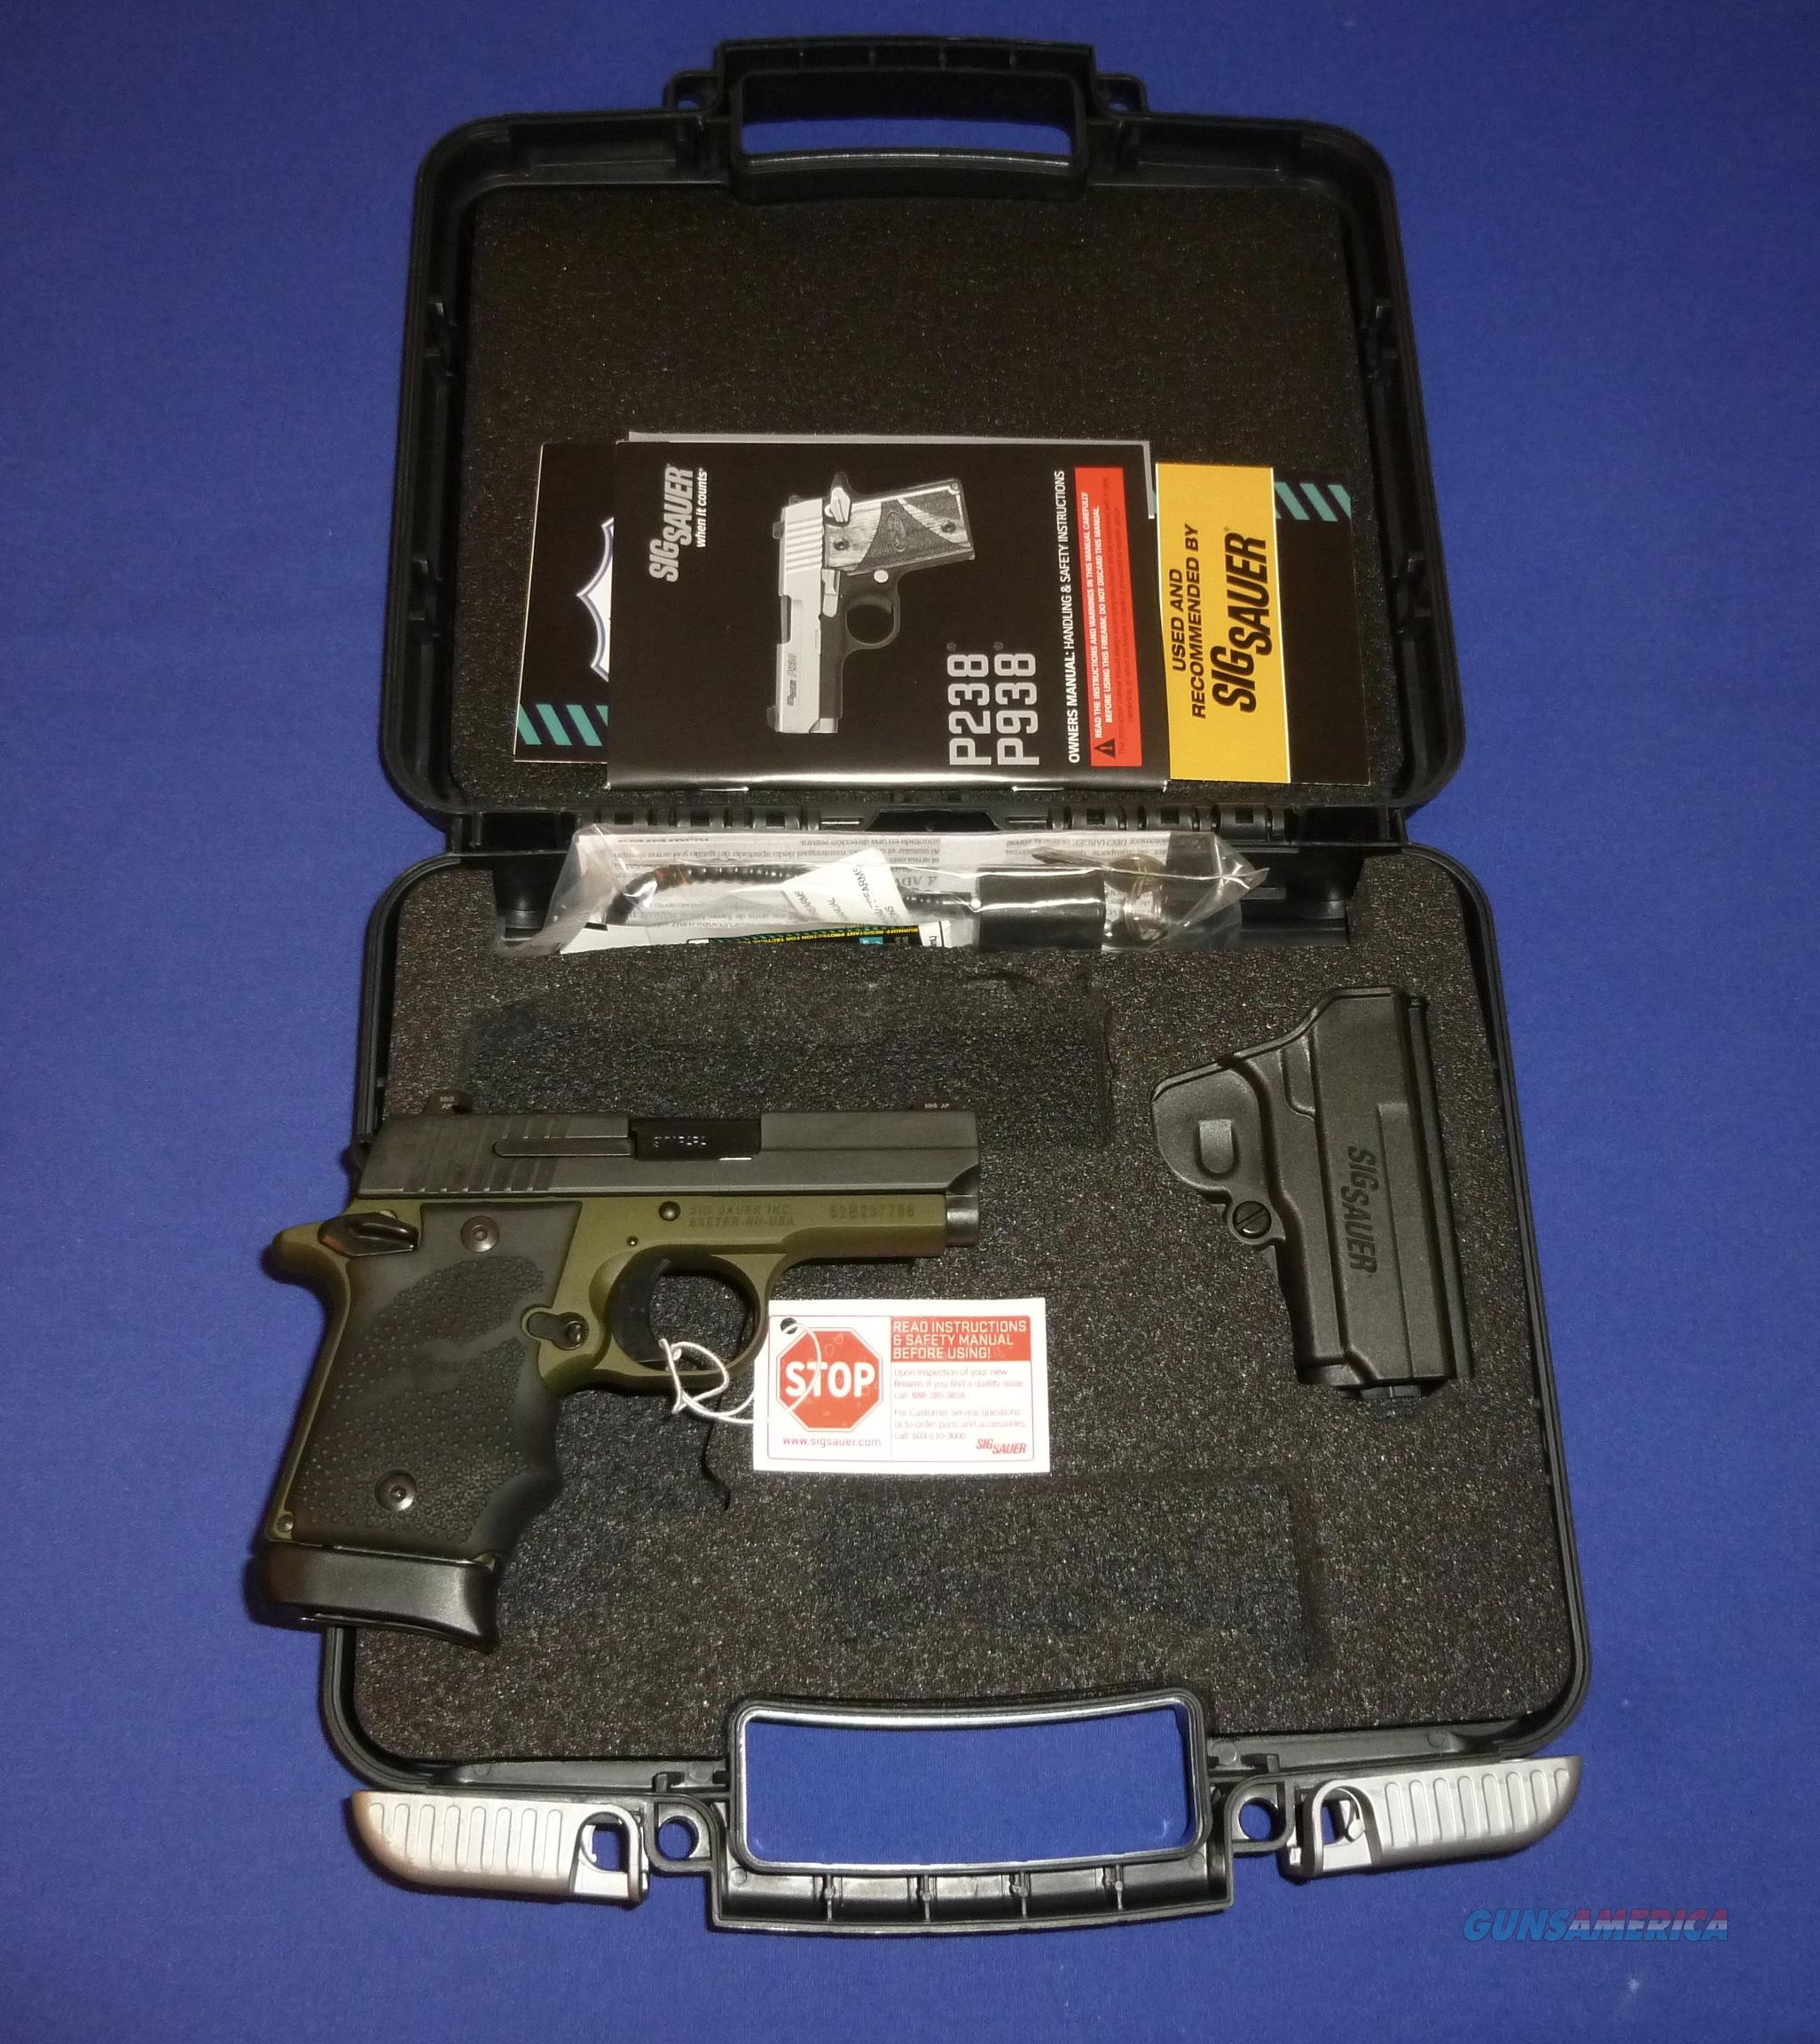 SIG P938 9MM COMPACT PISTOL, ARMY GREEN, NIGHT SIGHTS, HOLSTER, TALO DISTR. EDITION  Guns > Pistols > Sig - Sauer/Sigarms Pistols > P938